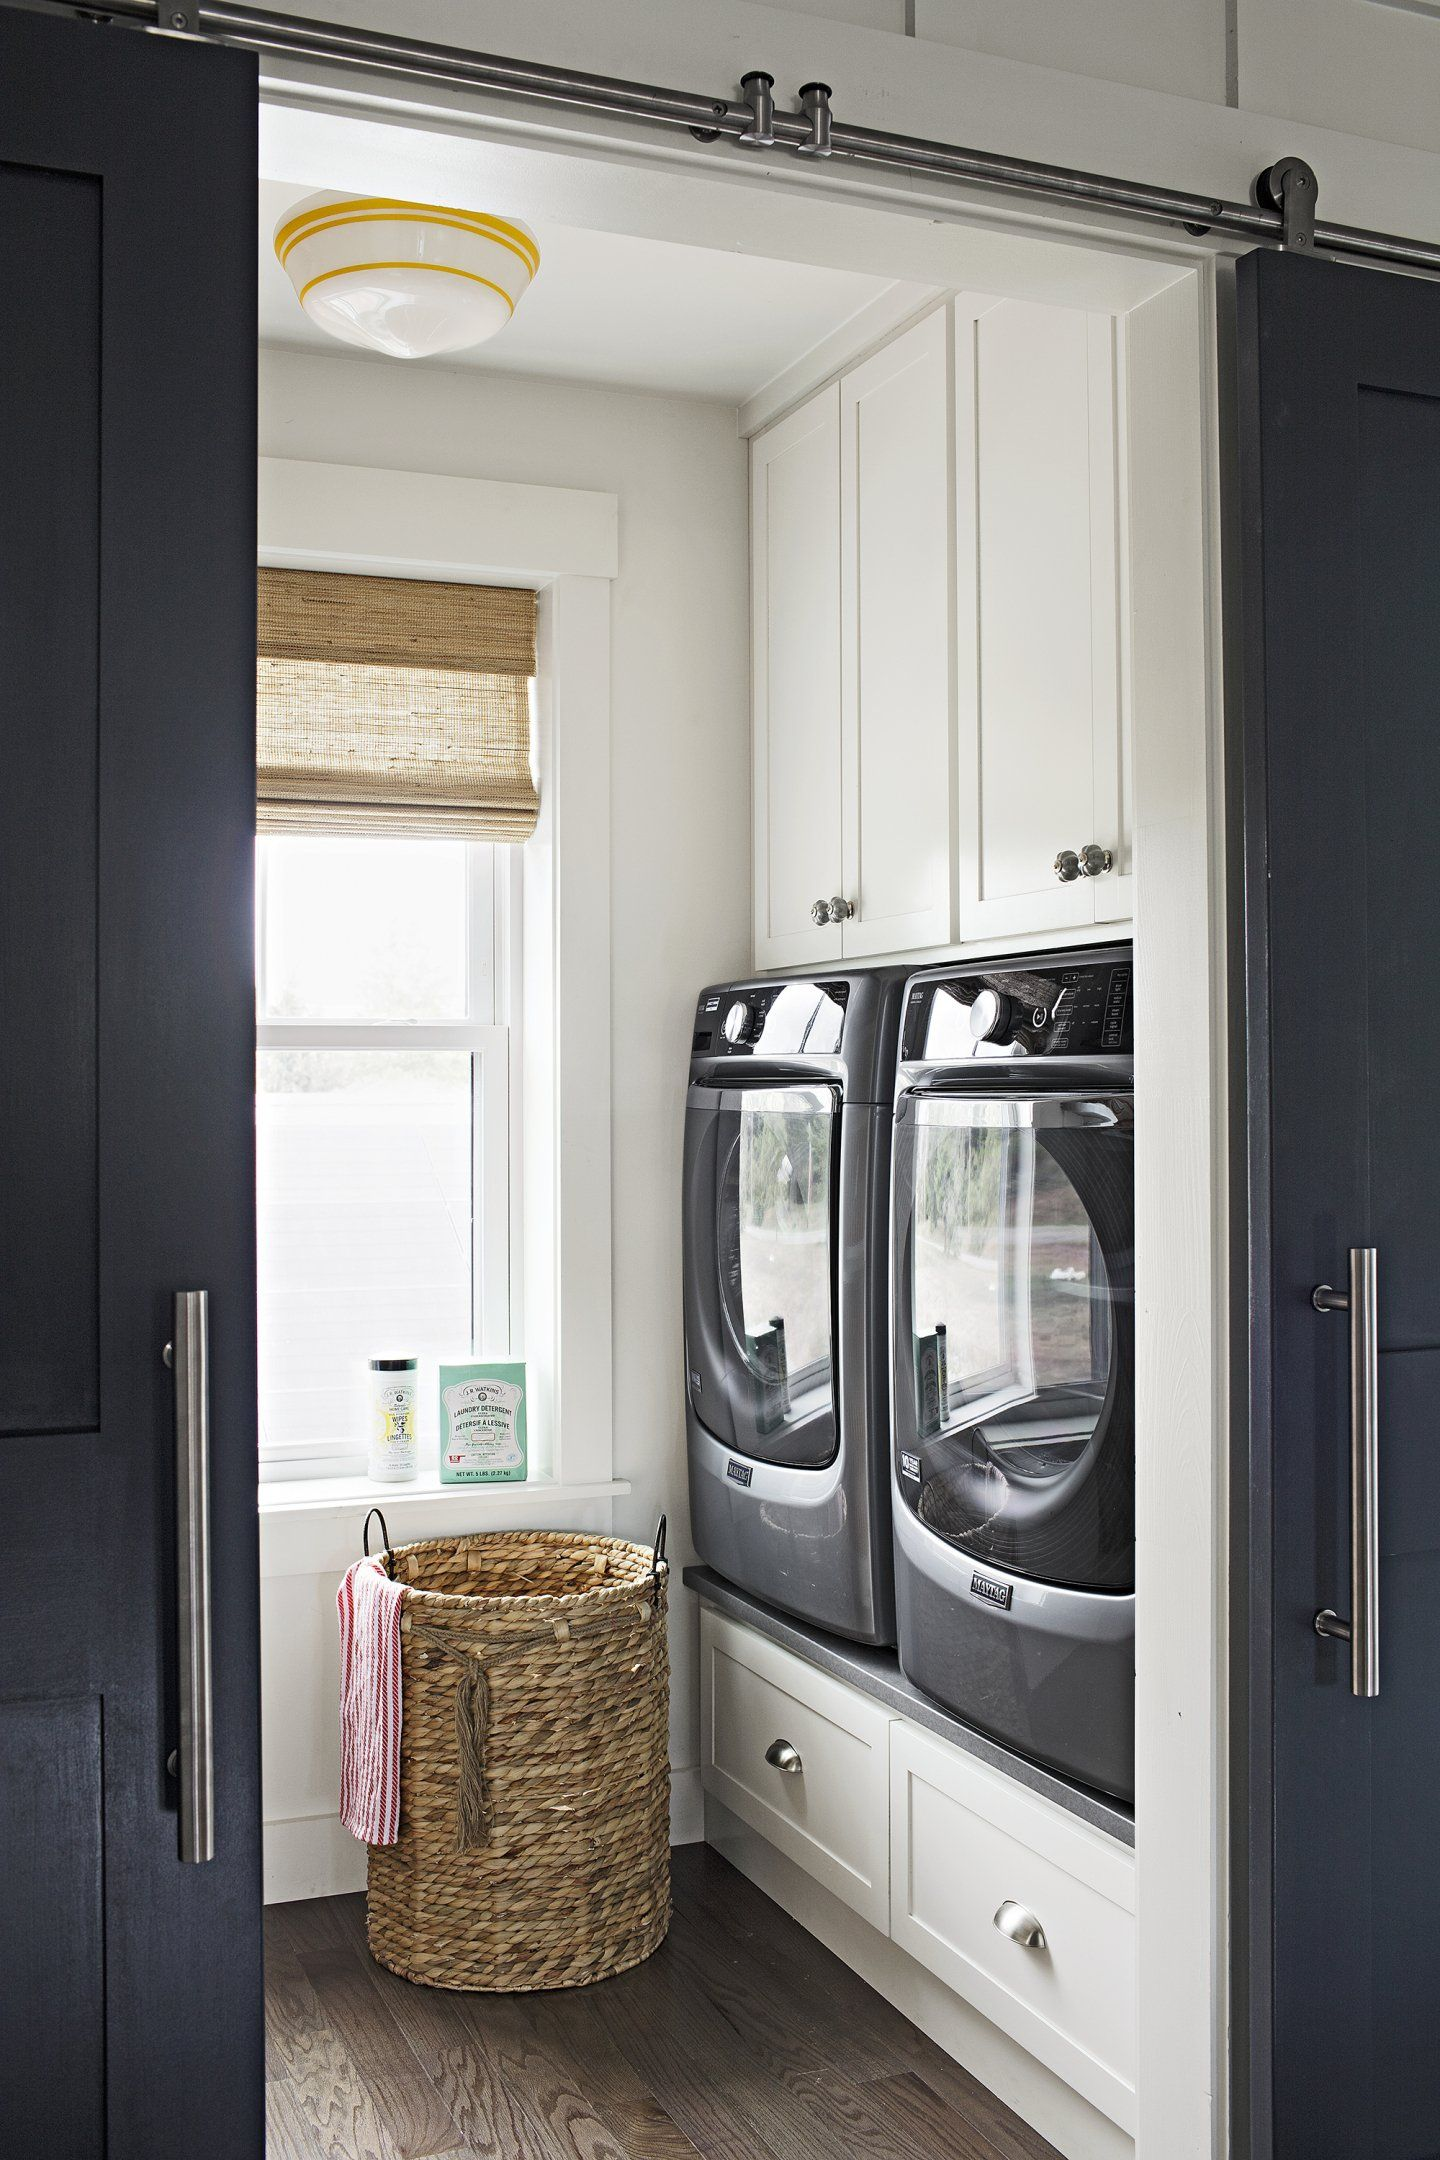 The compact laundry room is super-functional thanks to built-ins surrounding the washer and dryer, and another wall of cabinets with a countertop for folding clothes on the opposite side of the room. Redi-Prime Shaker-style 8782 barn doors; simpsondoor.com. Schoolhouse ceiling fixture by barnlightelectric.com. Wendy Bellissimo woven shade by smithnoble.com